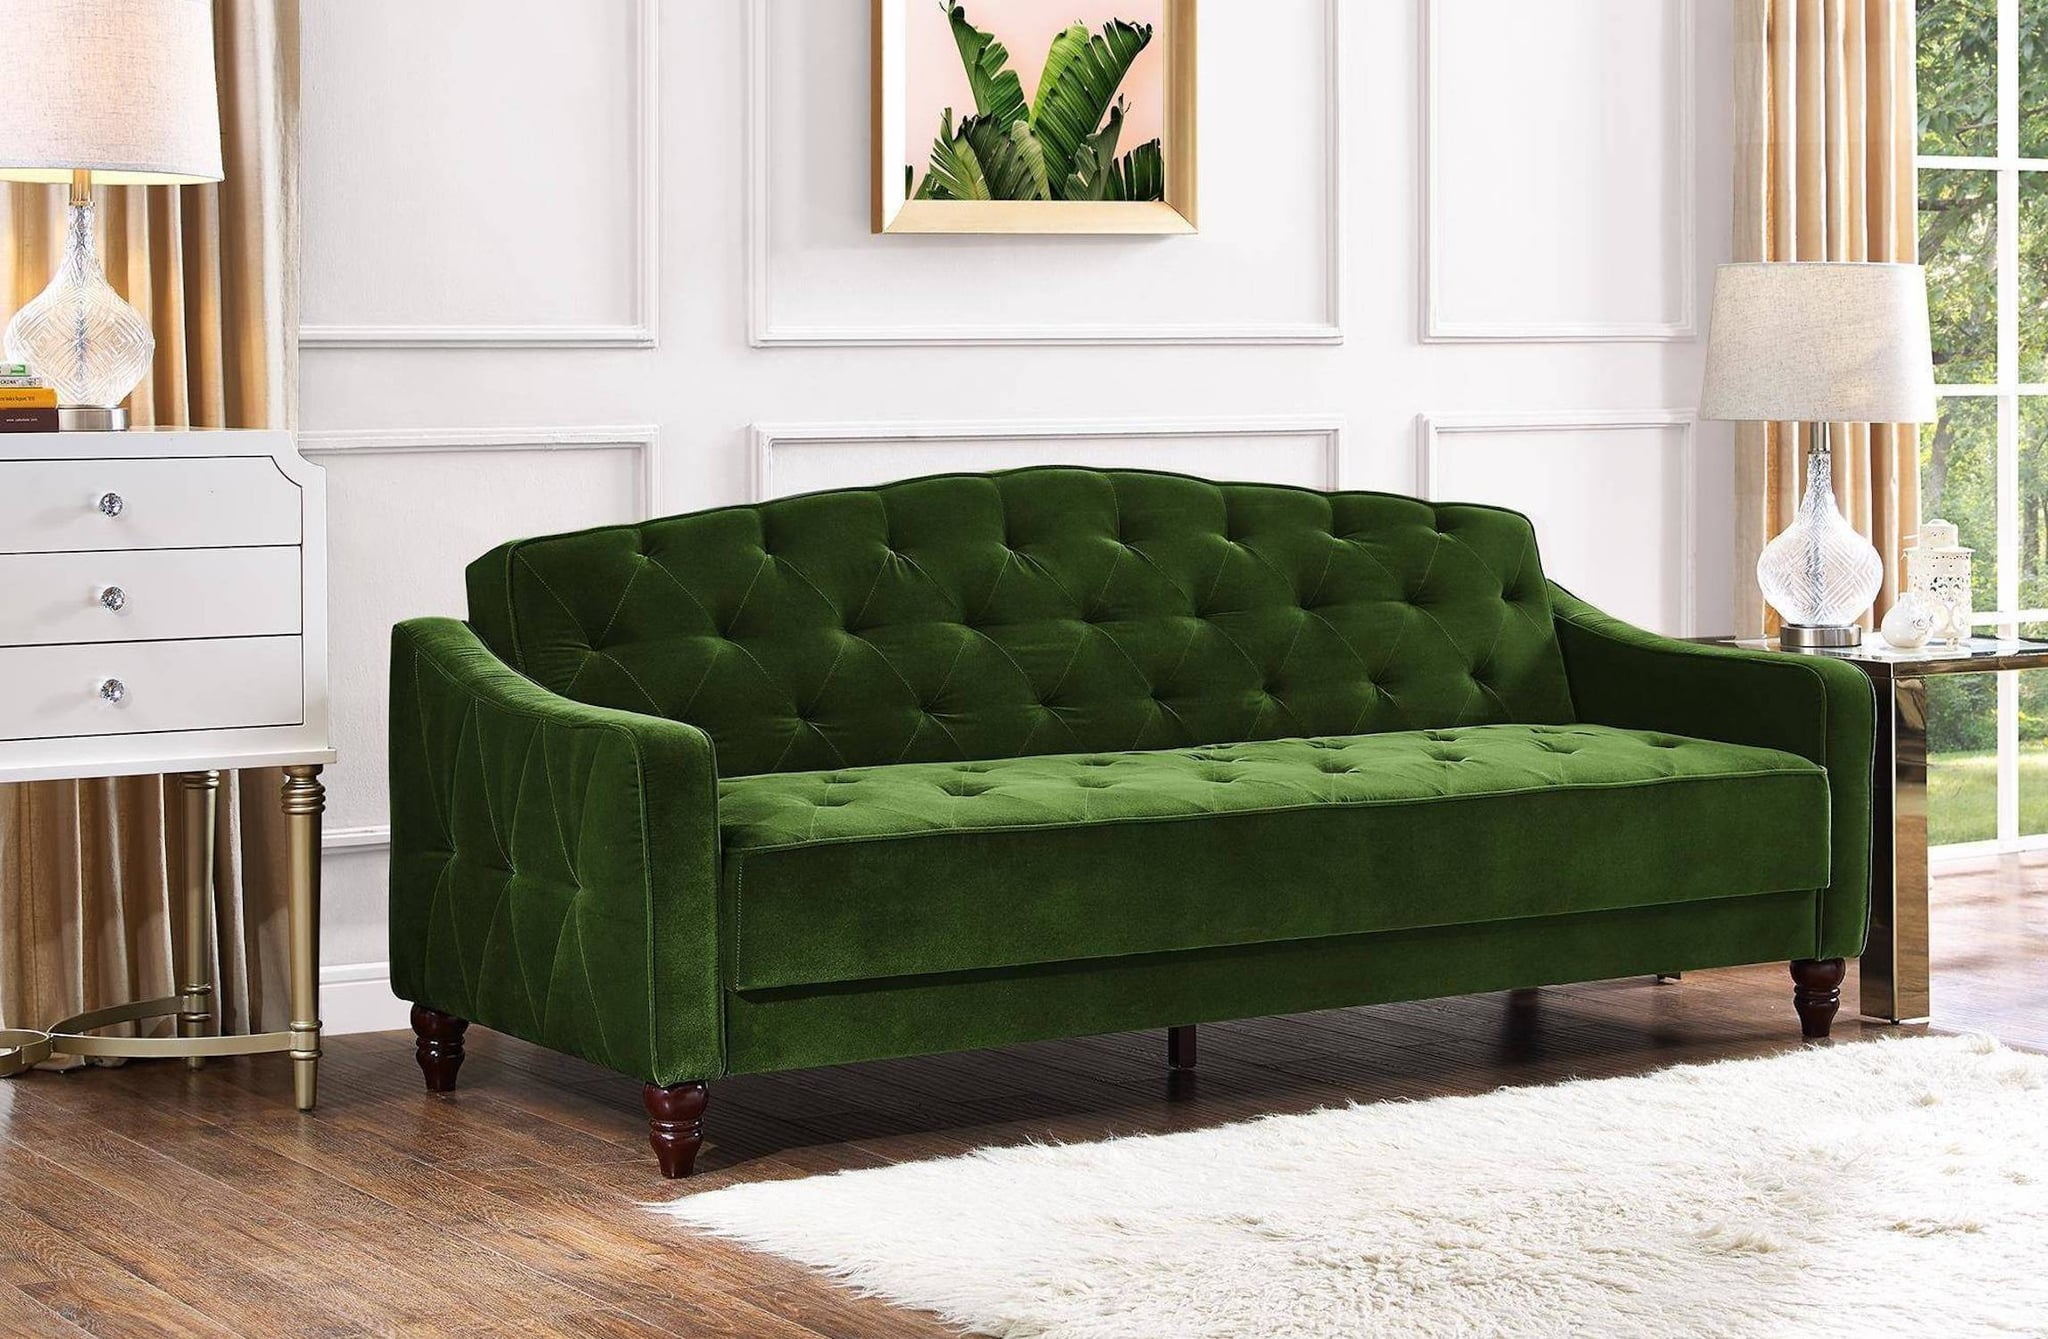 Finest Novogratz Vintage Tufted Sofa Sleeper Review | POPSUGAR Home RE78